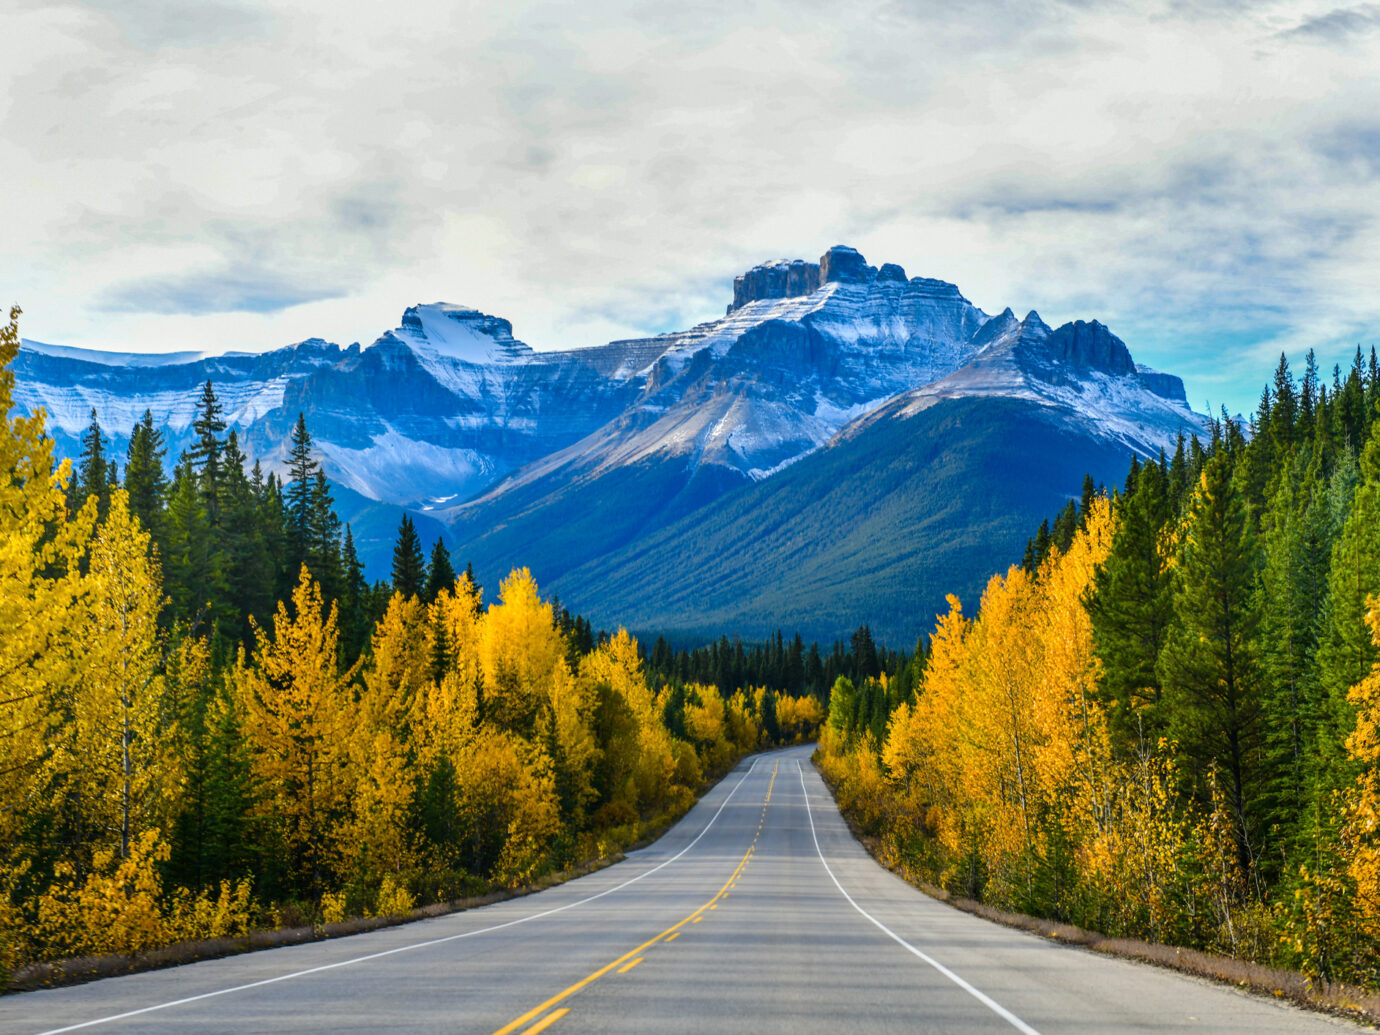 """The road 93 beautiful """"Icefield Parkway"""" in Autumn Jasper National park,Canada"""